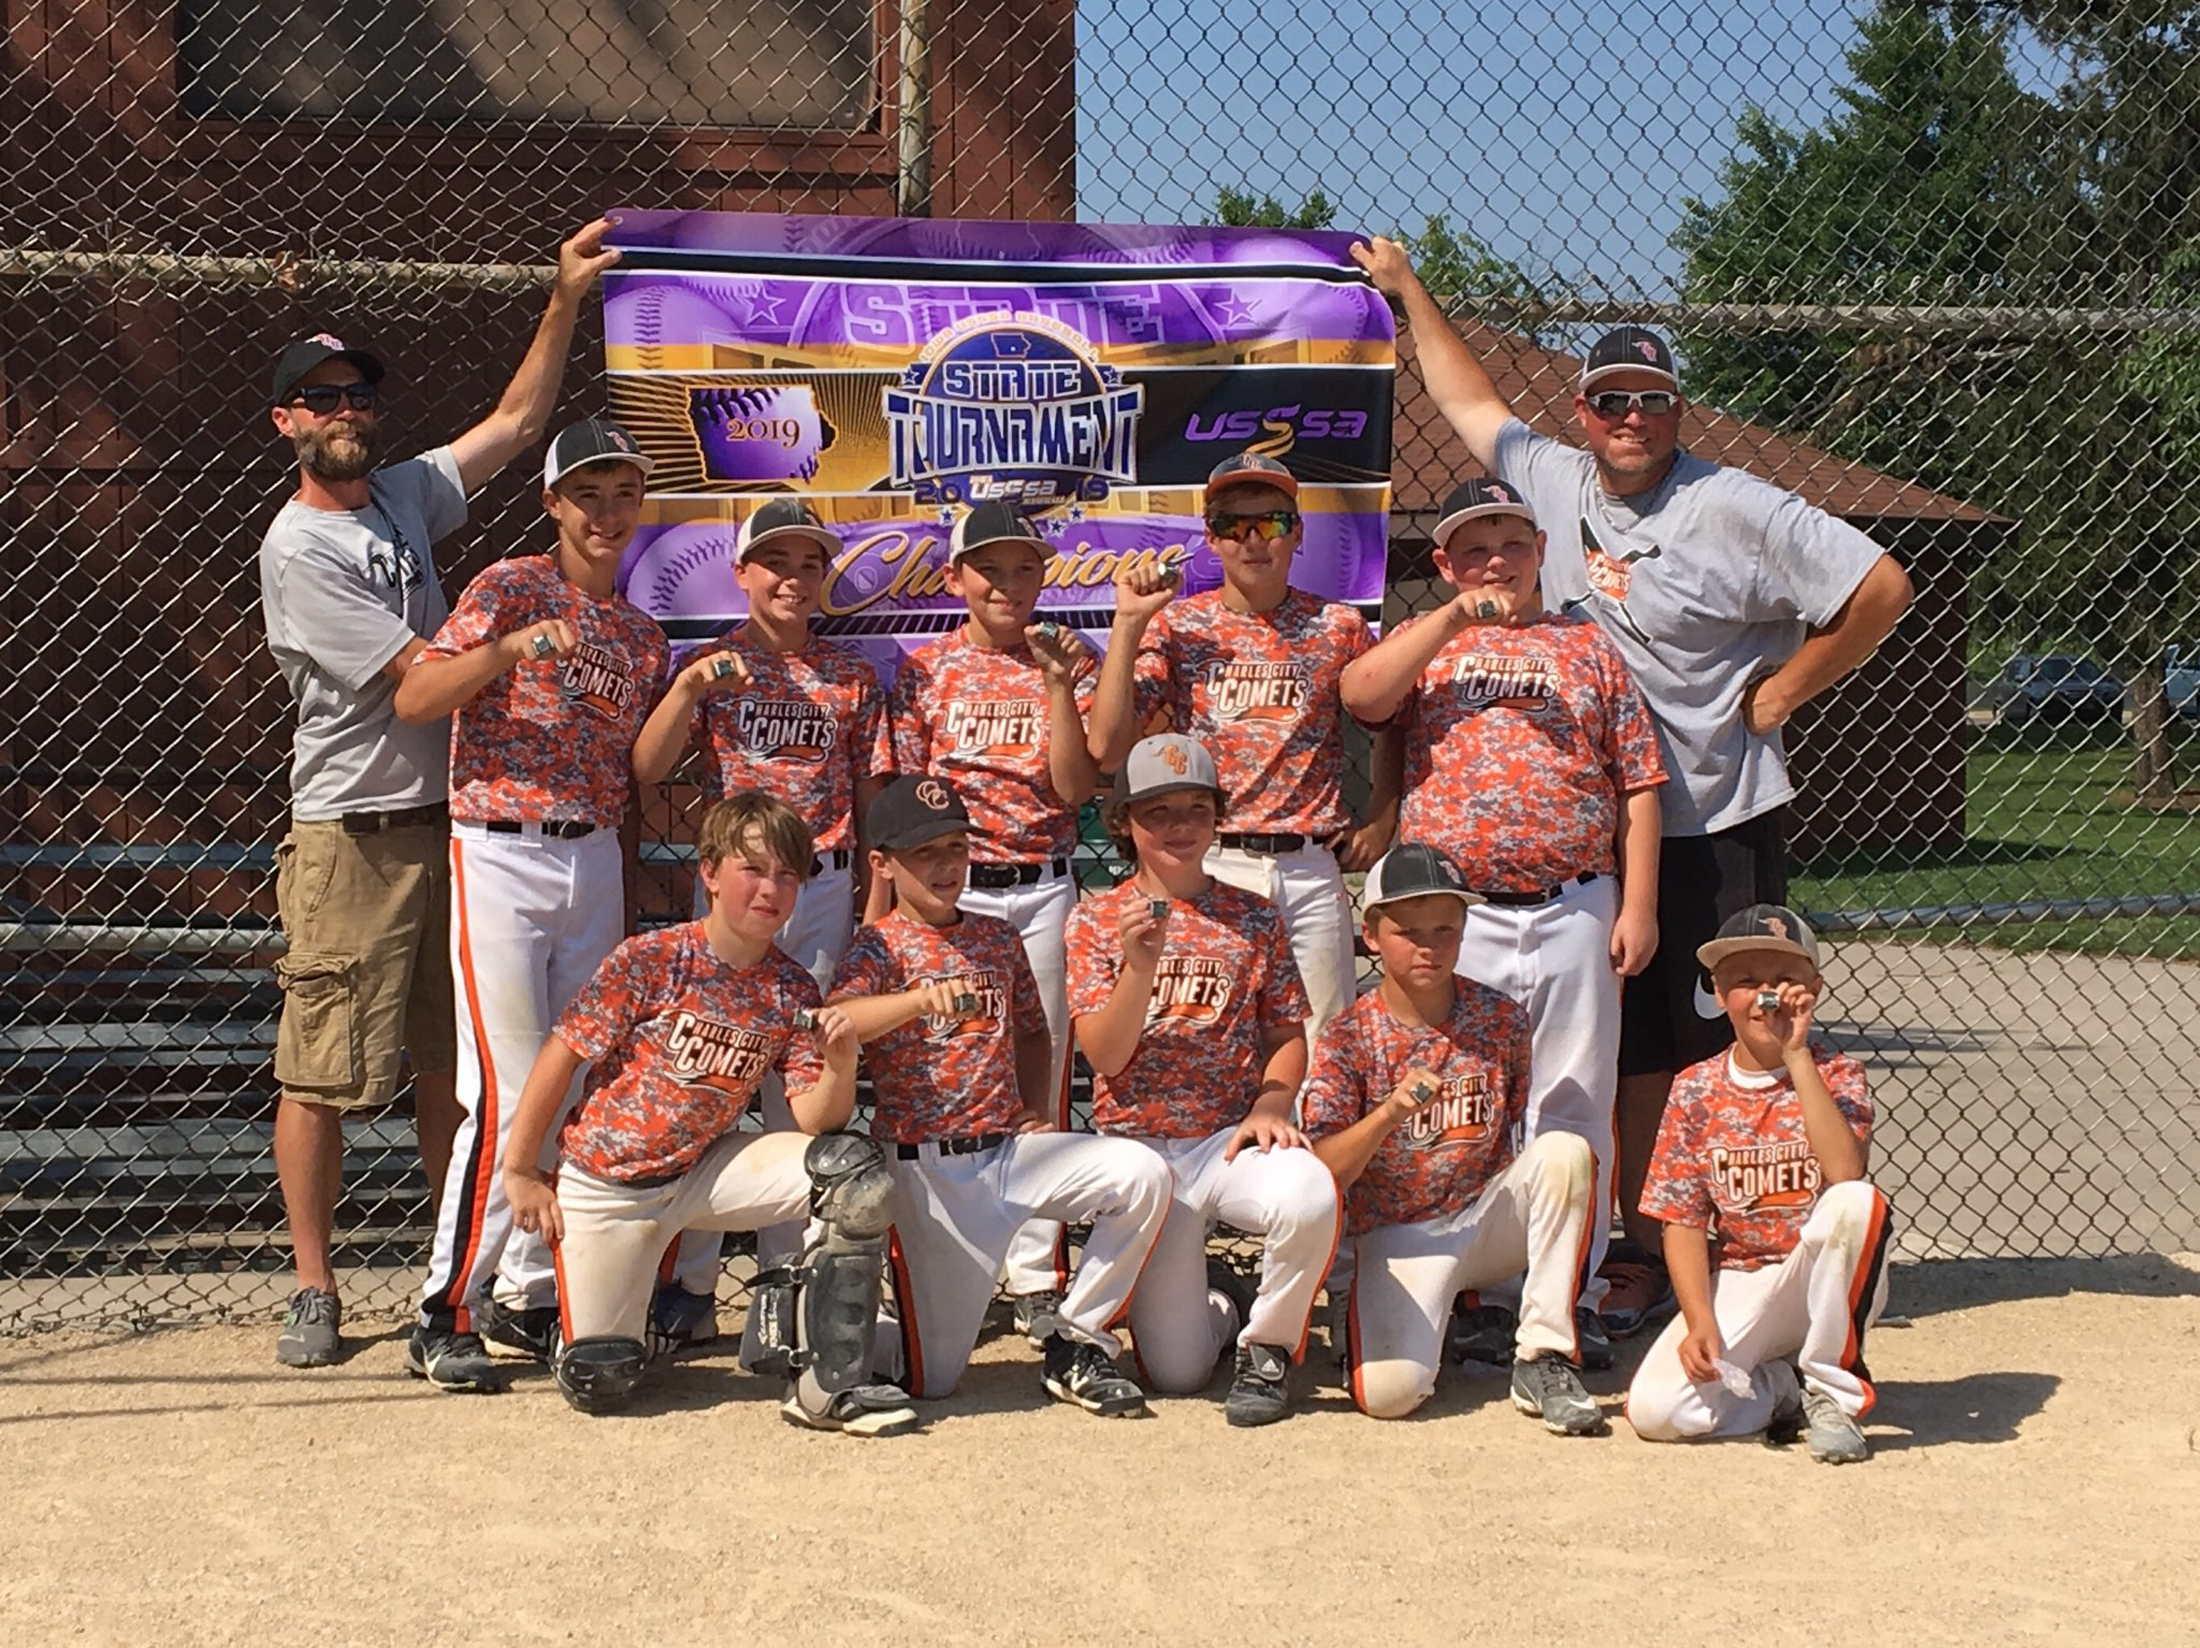 Charles City 11U baseball team wins USSSA state title